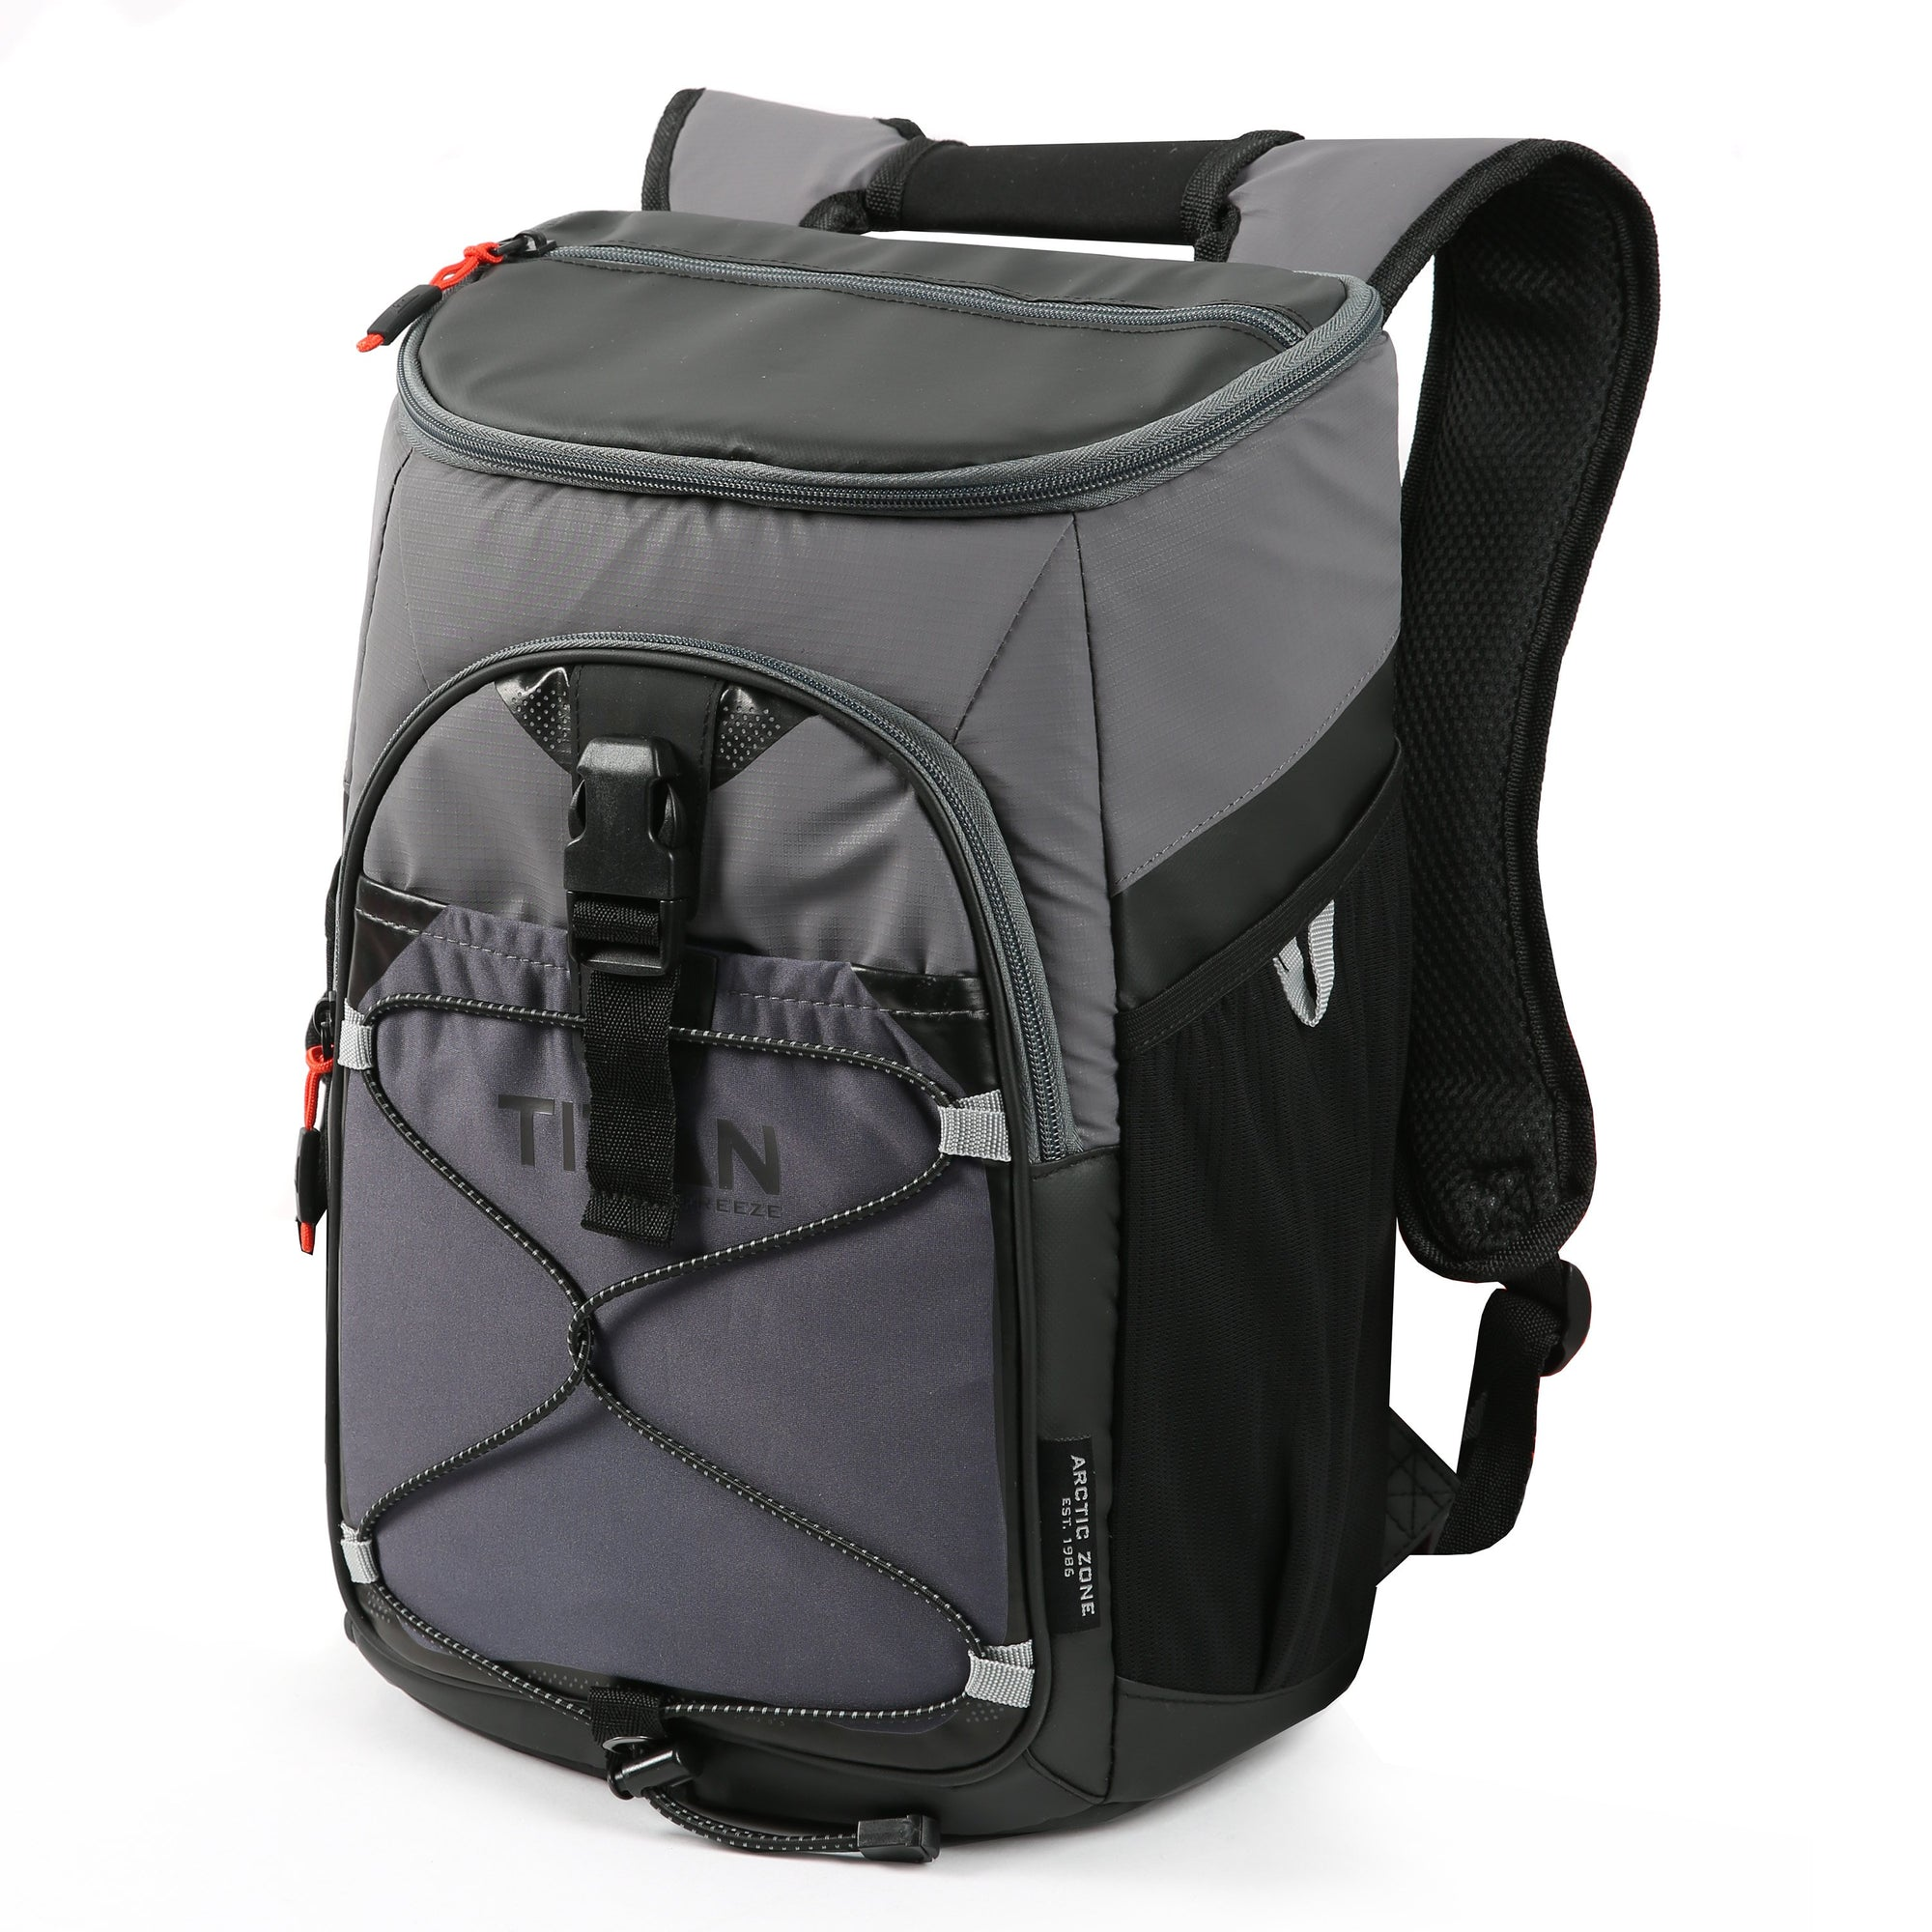 Titan Deep Freeze® 24 Can Backpack Cooler - Sharkskin Gray - Front, closed